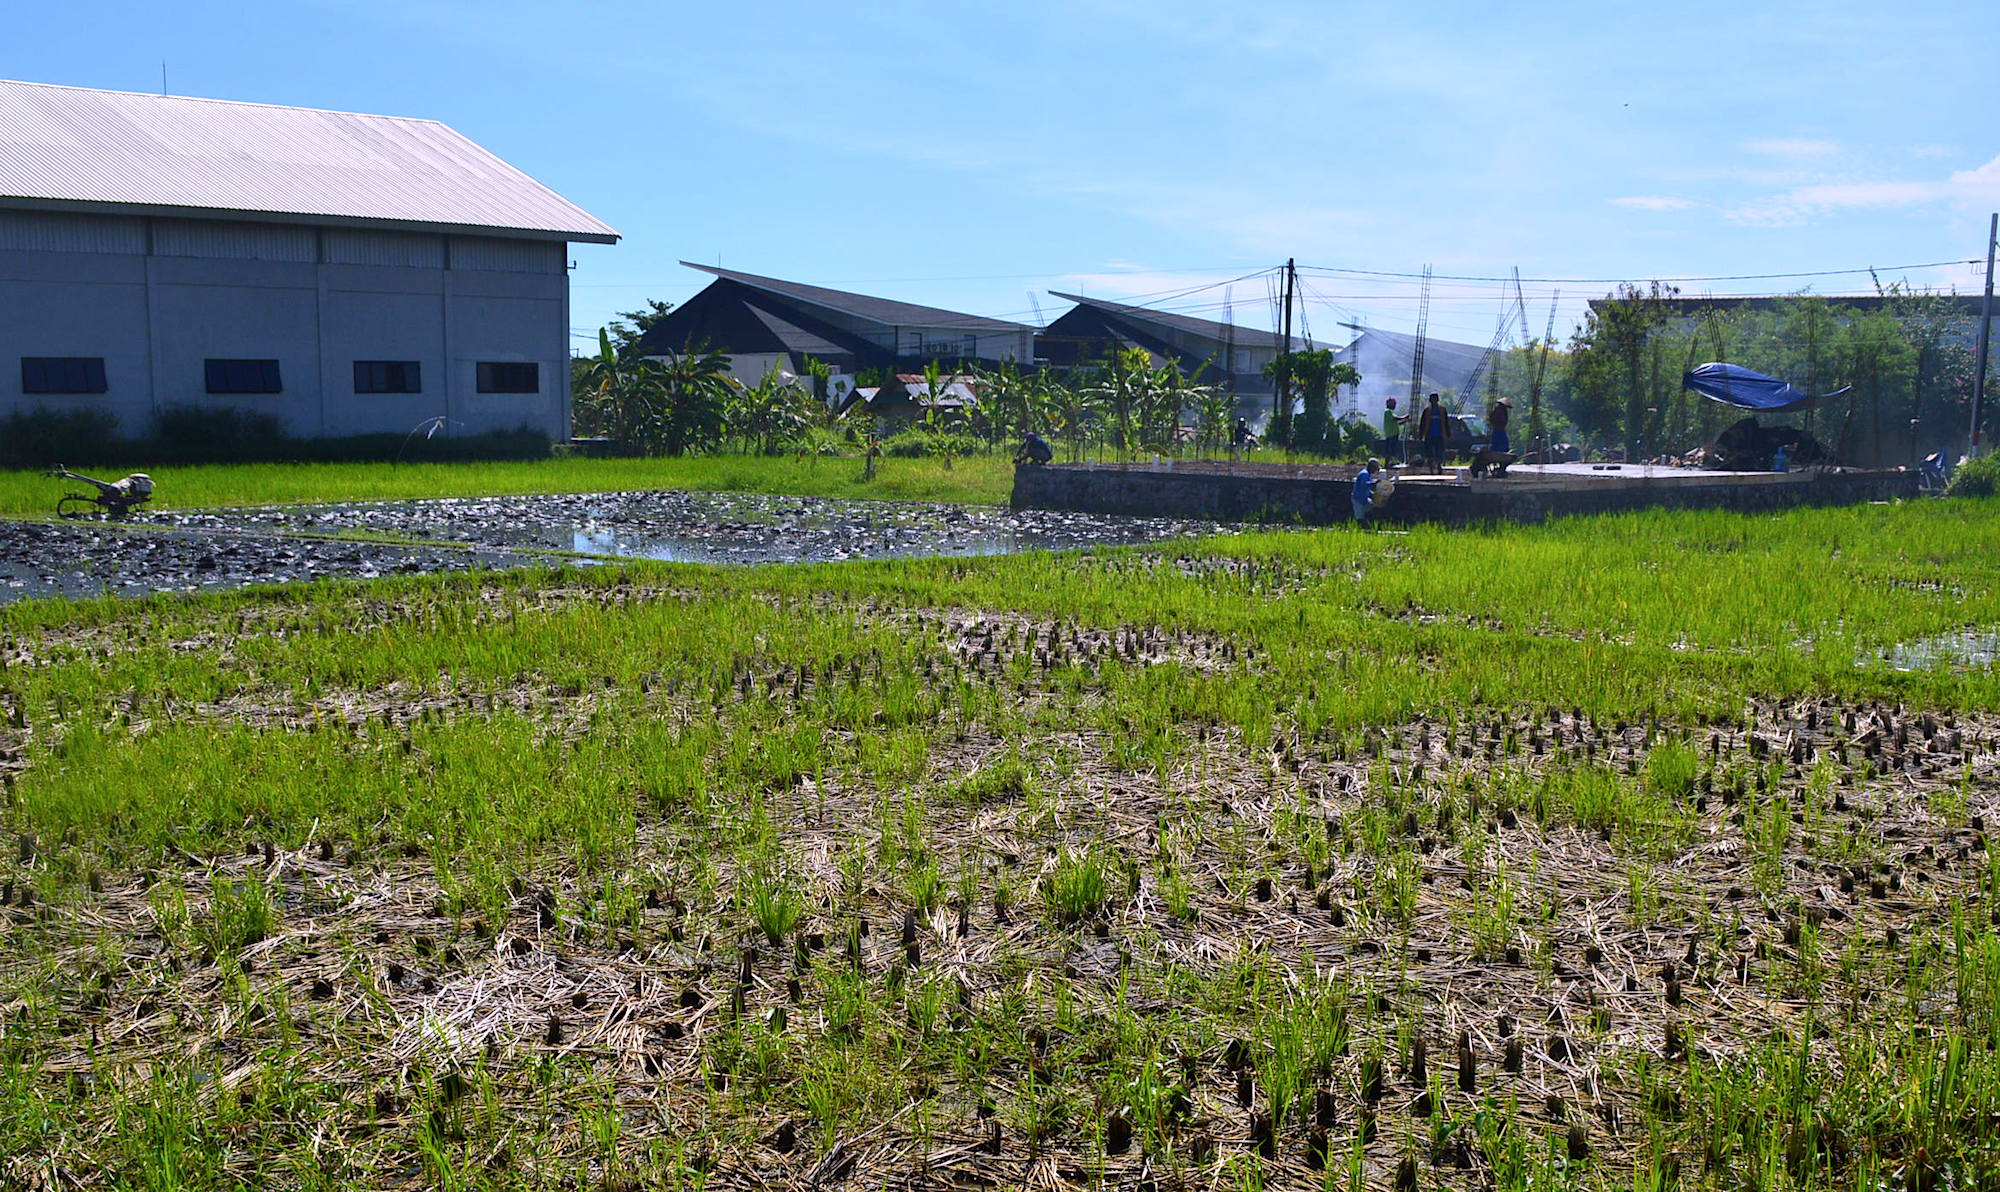 Our villa was next to a rice field and a short walk from cafes, shops, convenience stores, and a beach club